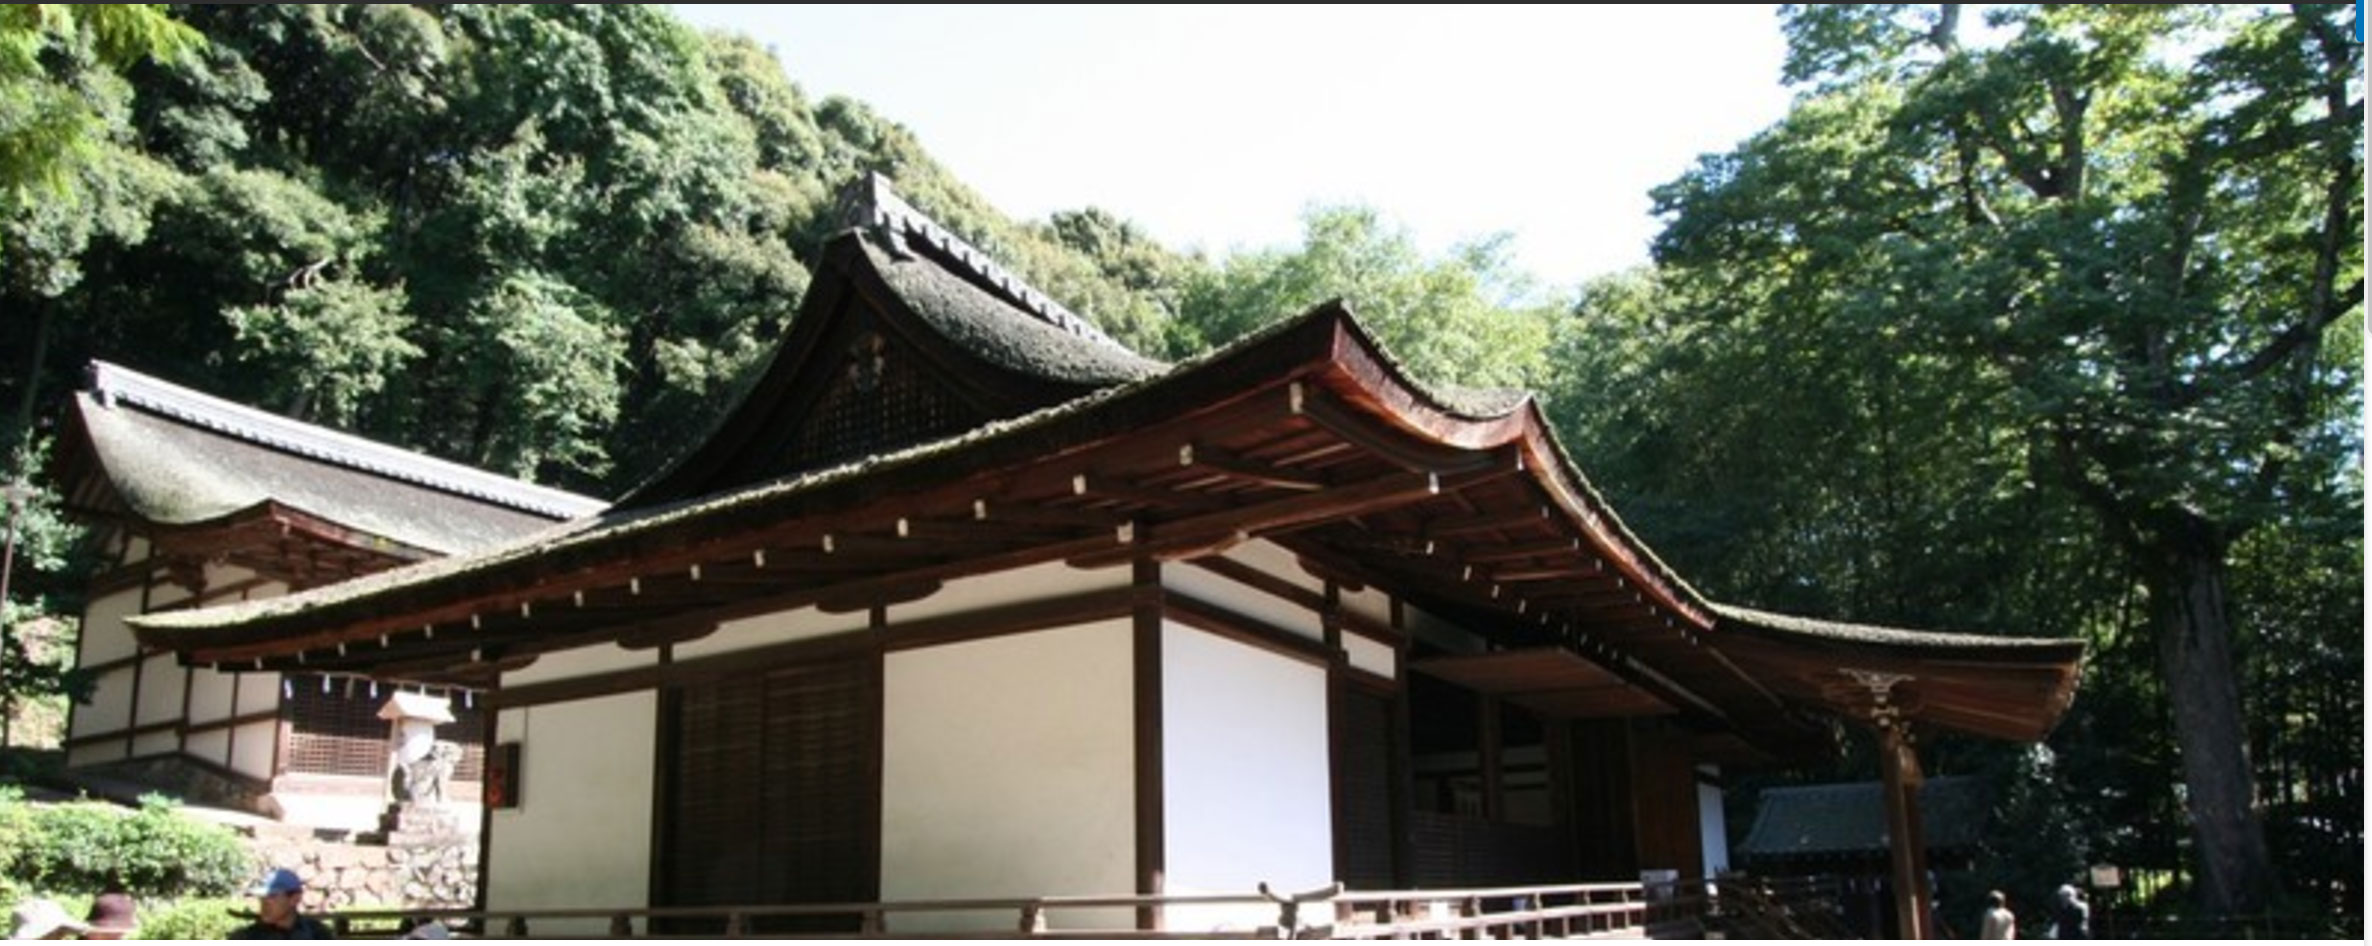 Ujigami Shinto Shrine (Japan, 1300s AD)